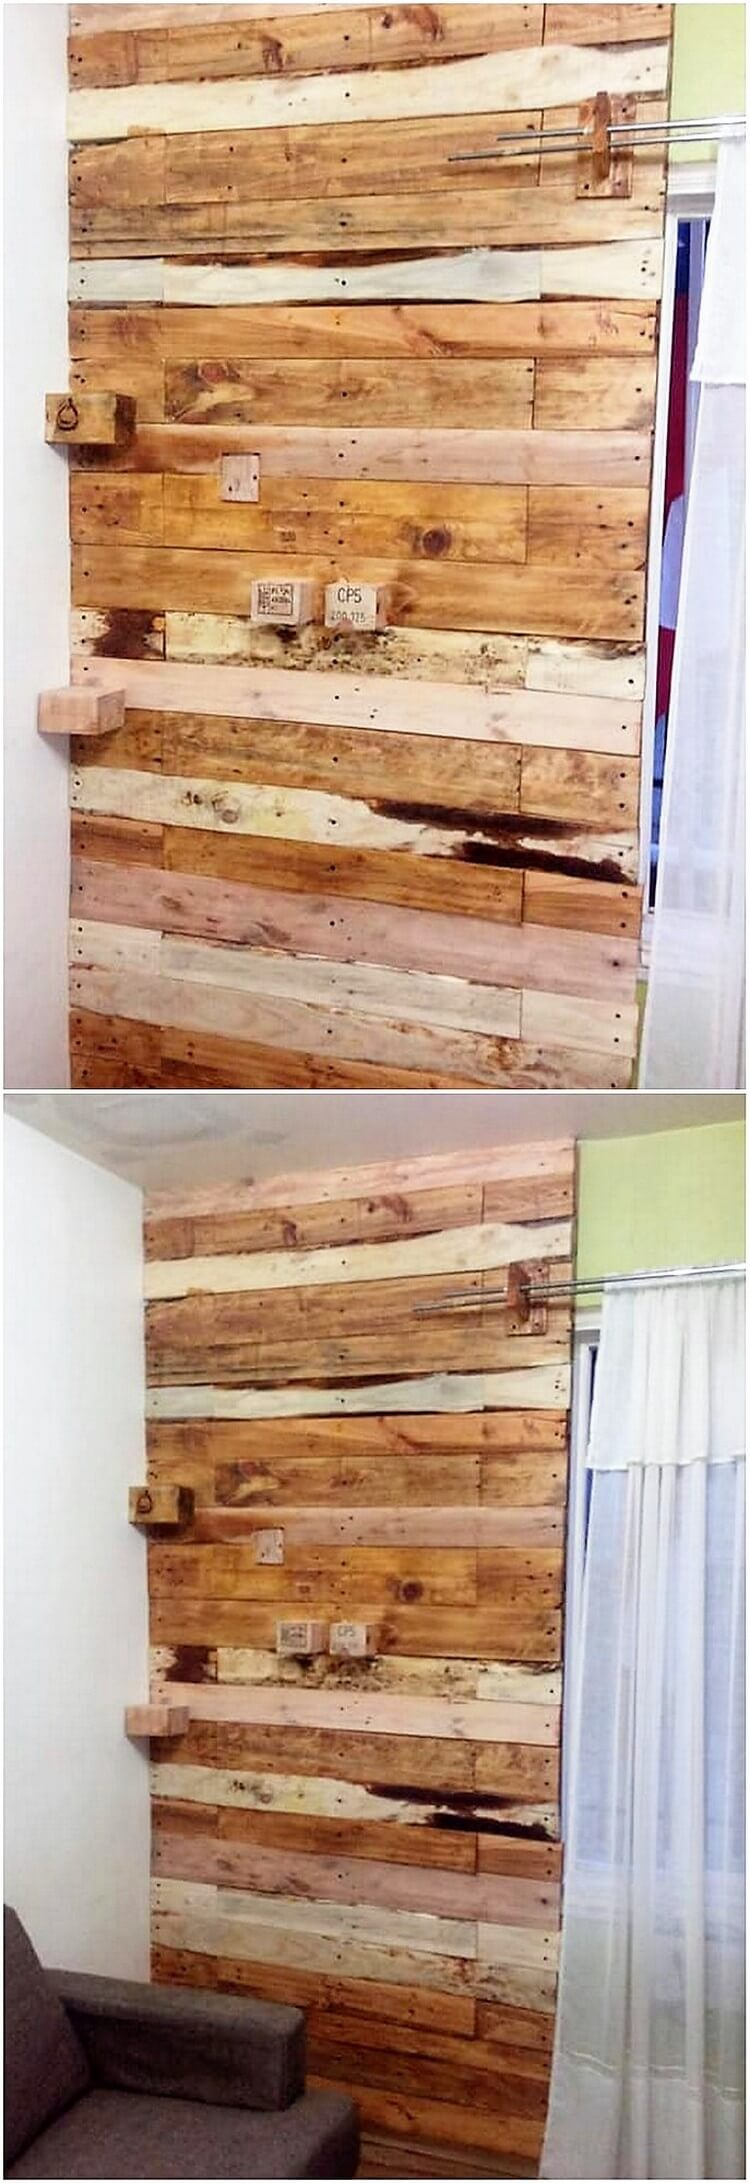 Pallet Wall Paneling : Creative wood pallet projects you can do it yourself